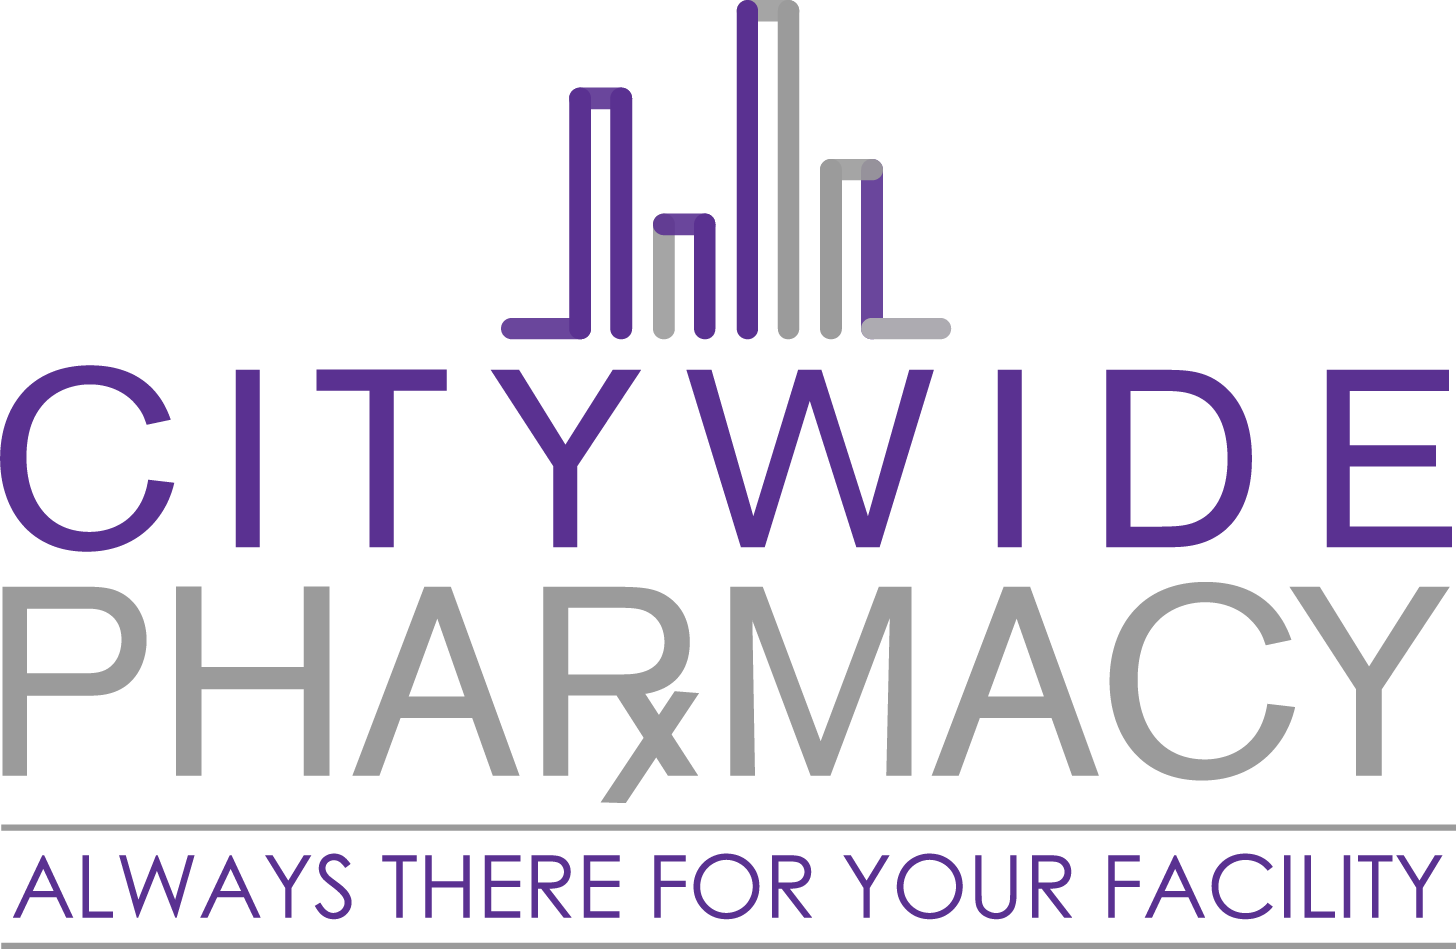 Citywide Pharmacy